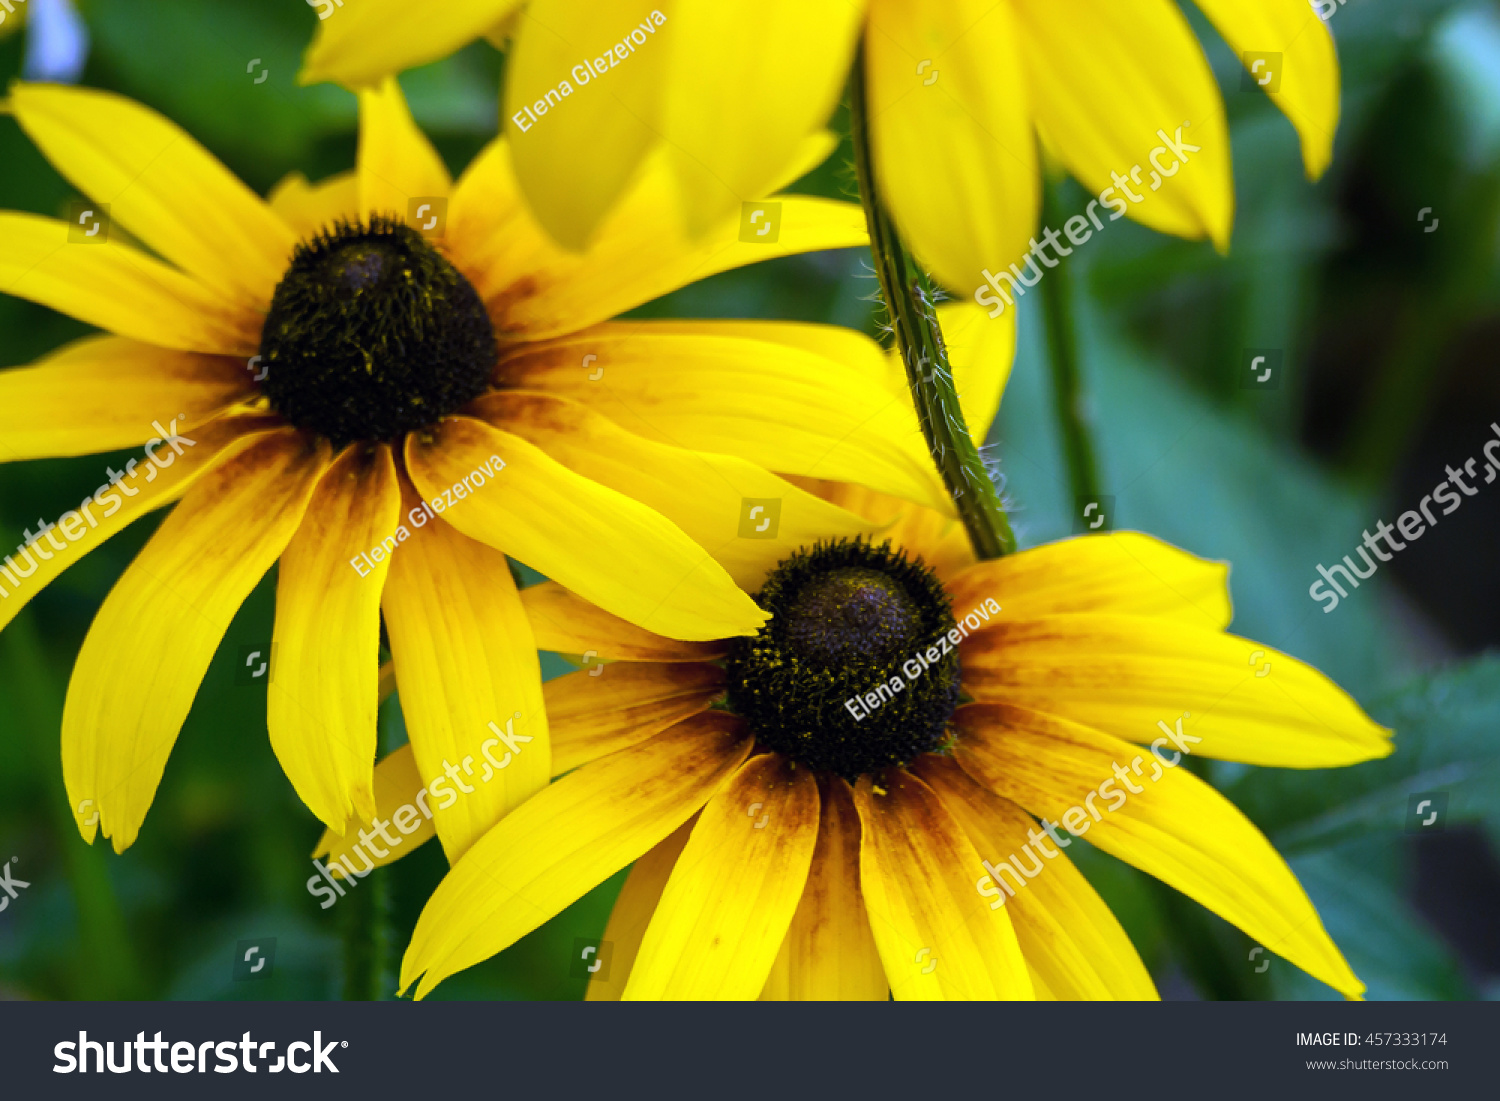 Several Yellow Daisy With A Dark Brown Center Growing In The Garden